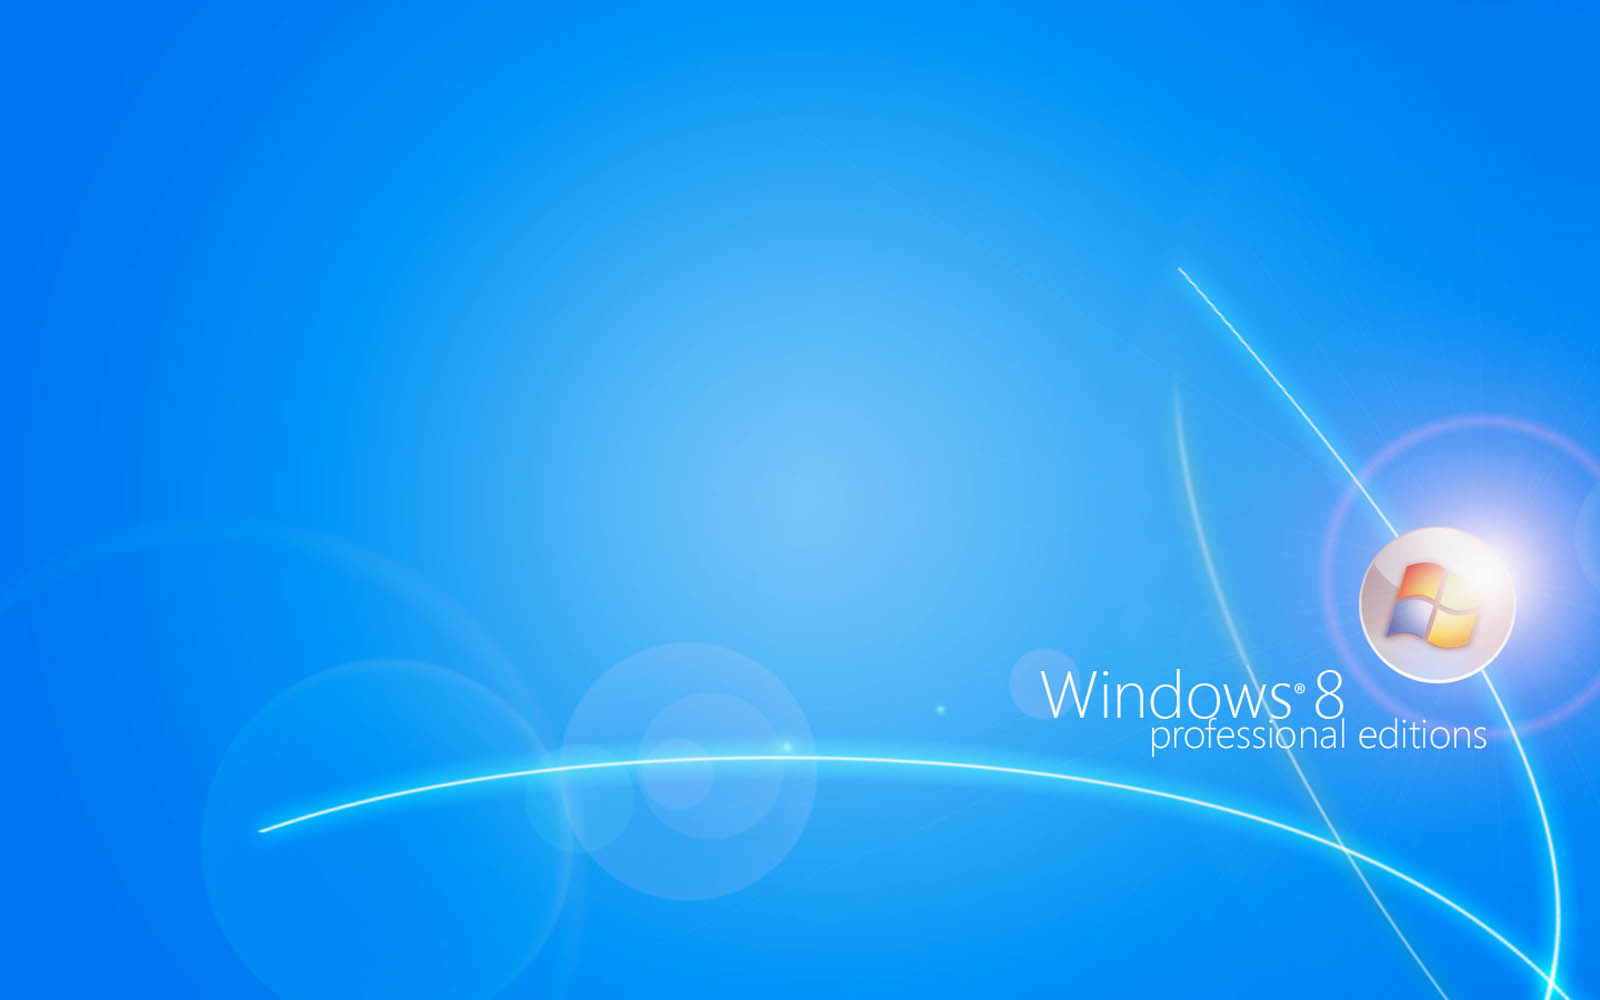 Wallpapers windows 8 wallpapers for Window 8 1 wallpaper